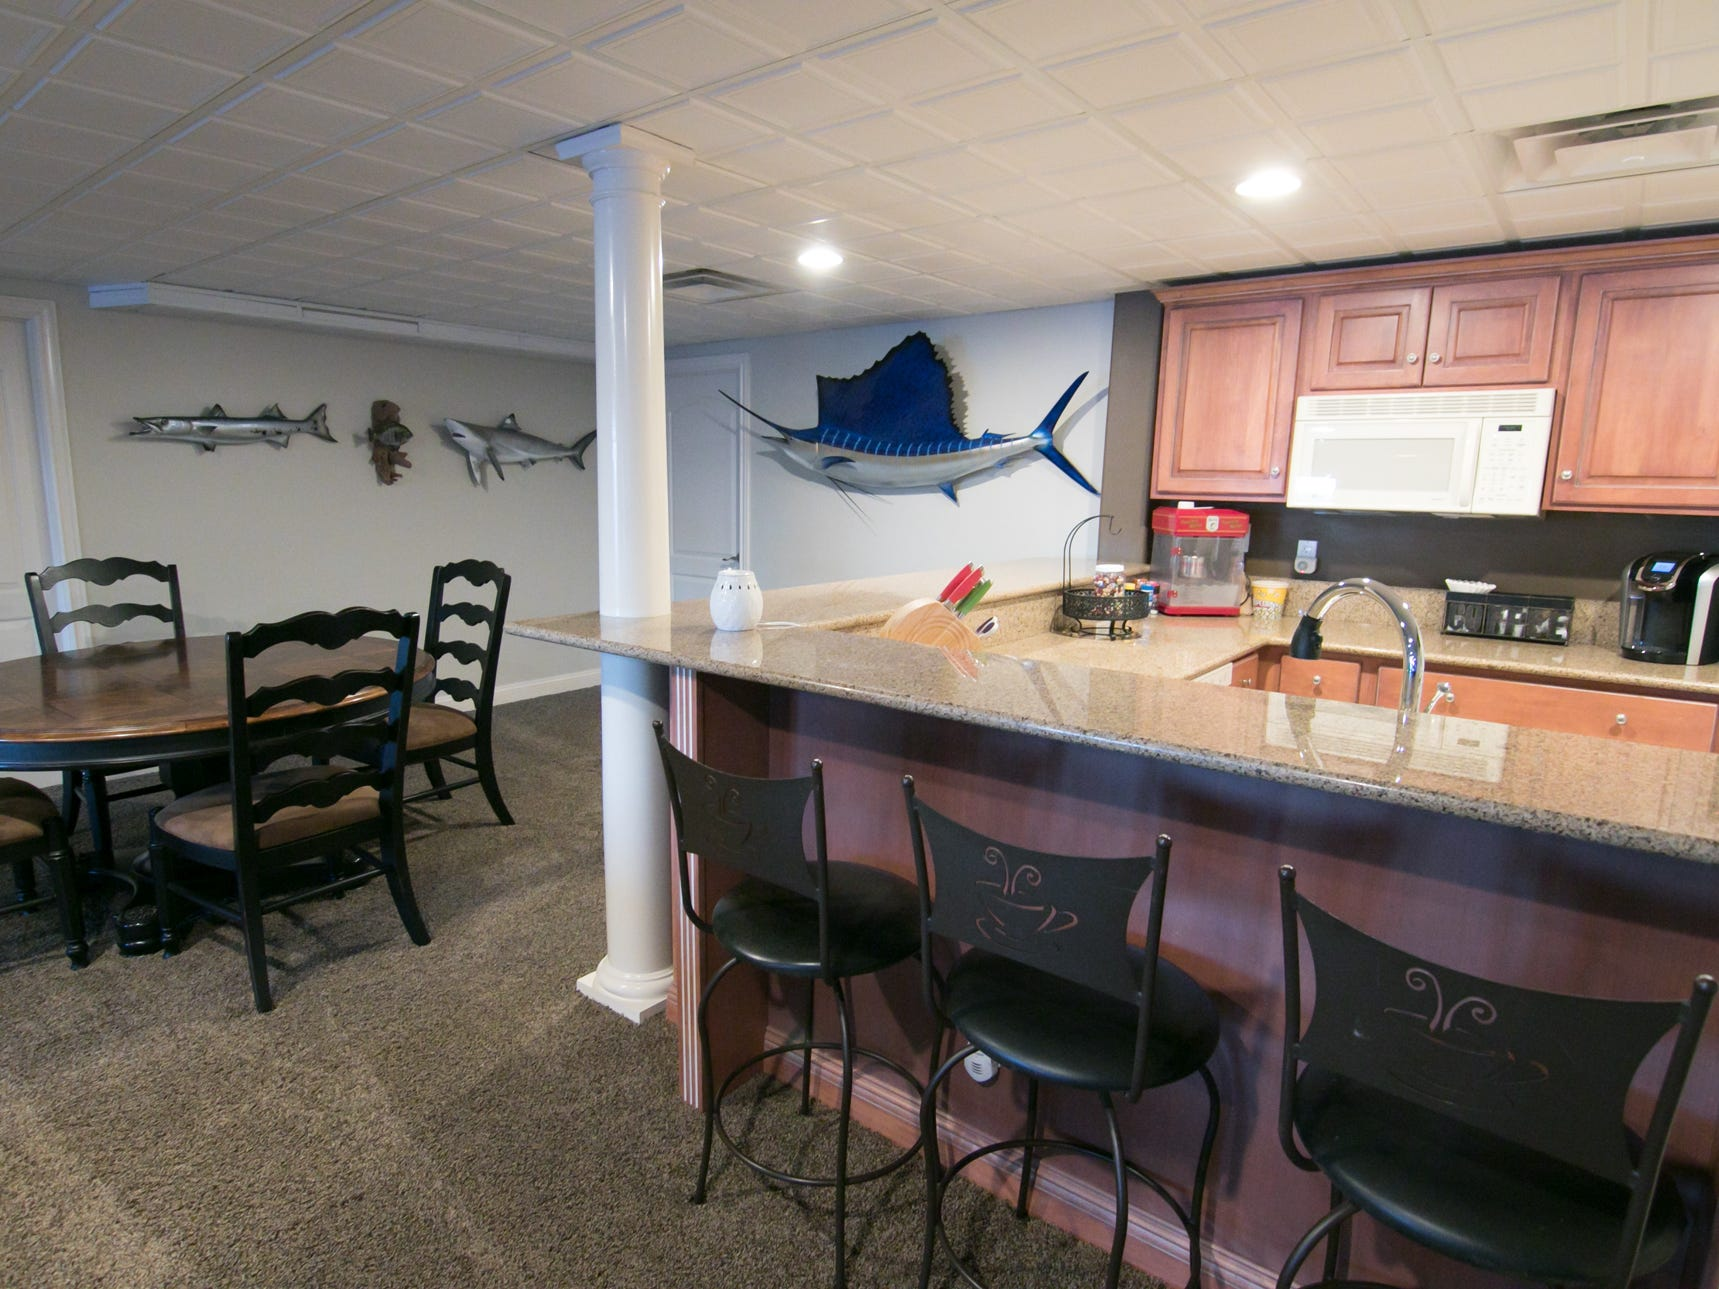 The basement of Adam and Michelle Harris's Genoa Township home features a second kitchen and displays some of Adam's prize catches on the wall, shown Friday, Jan. 4, 2019.